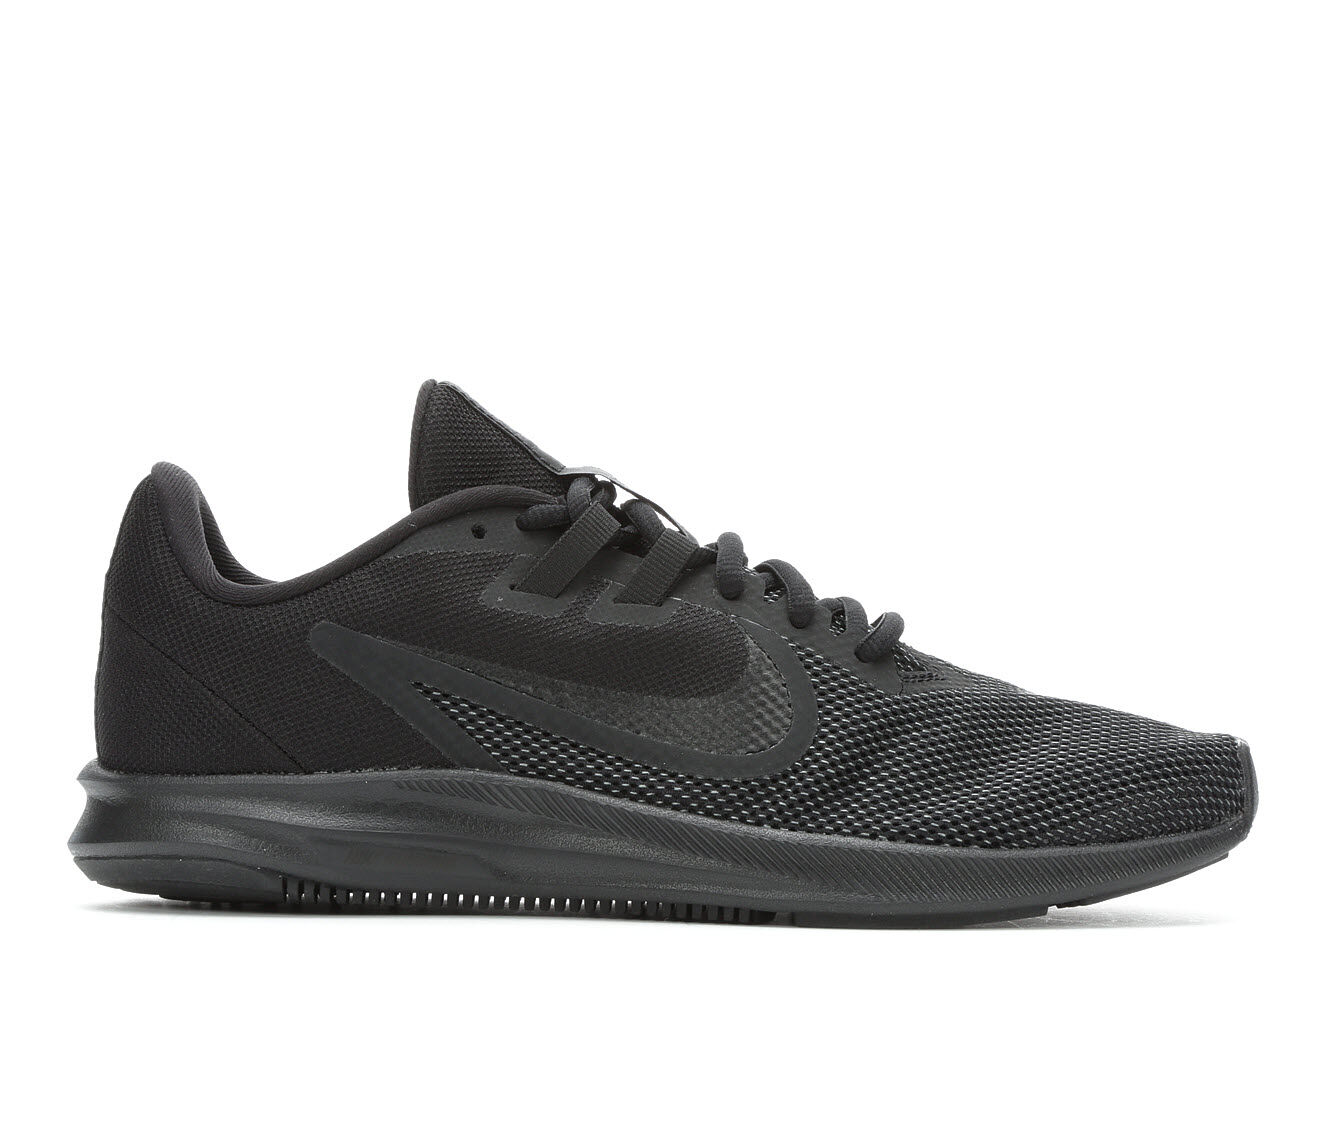 Women's Nike Downshifter 9 Running Shoes Black/Anthracit